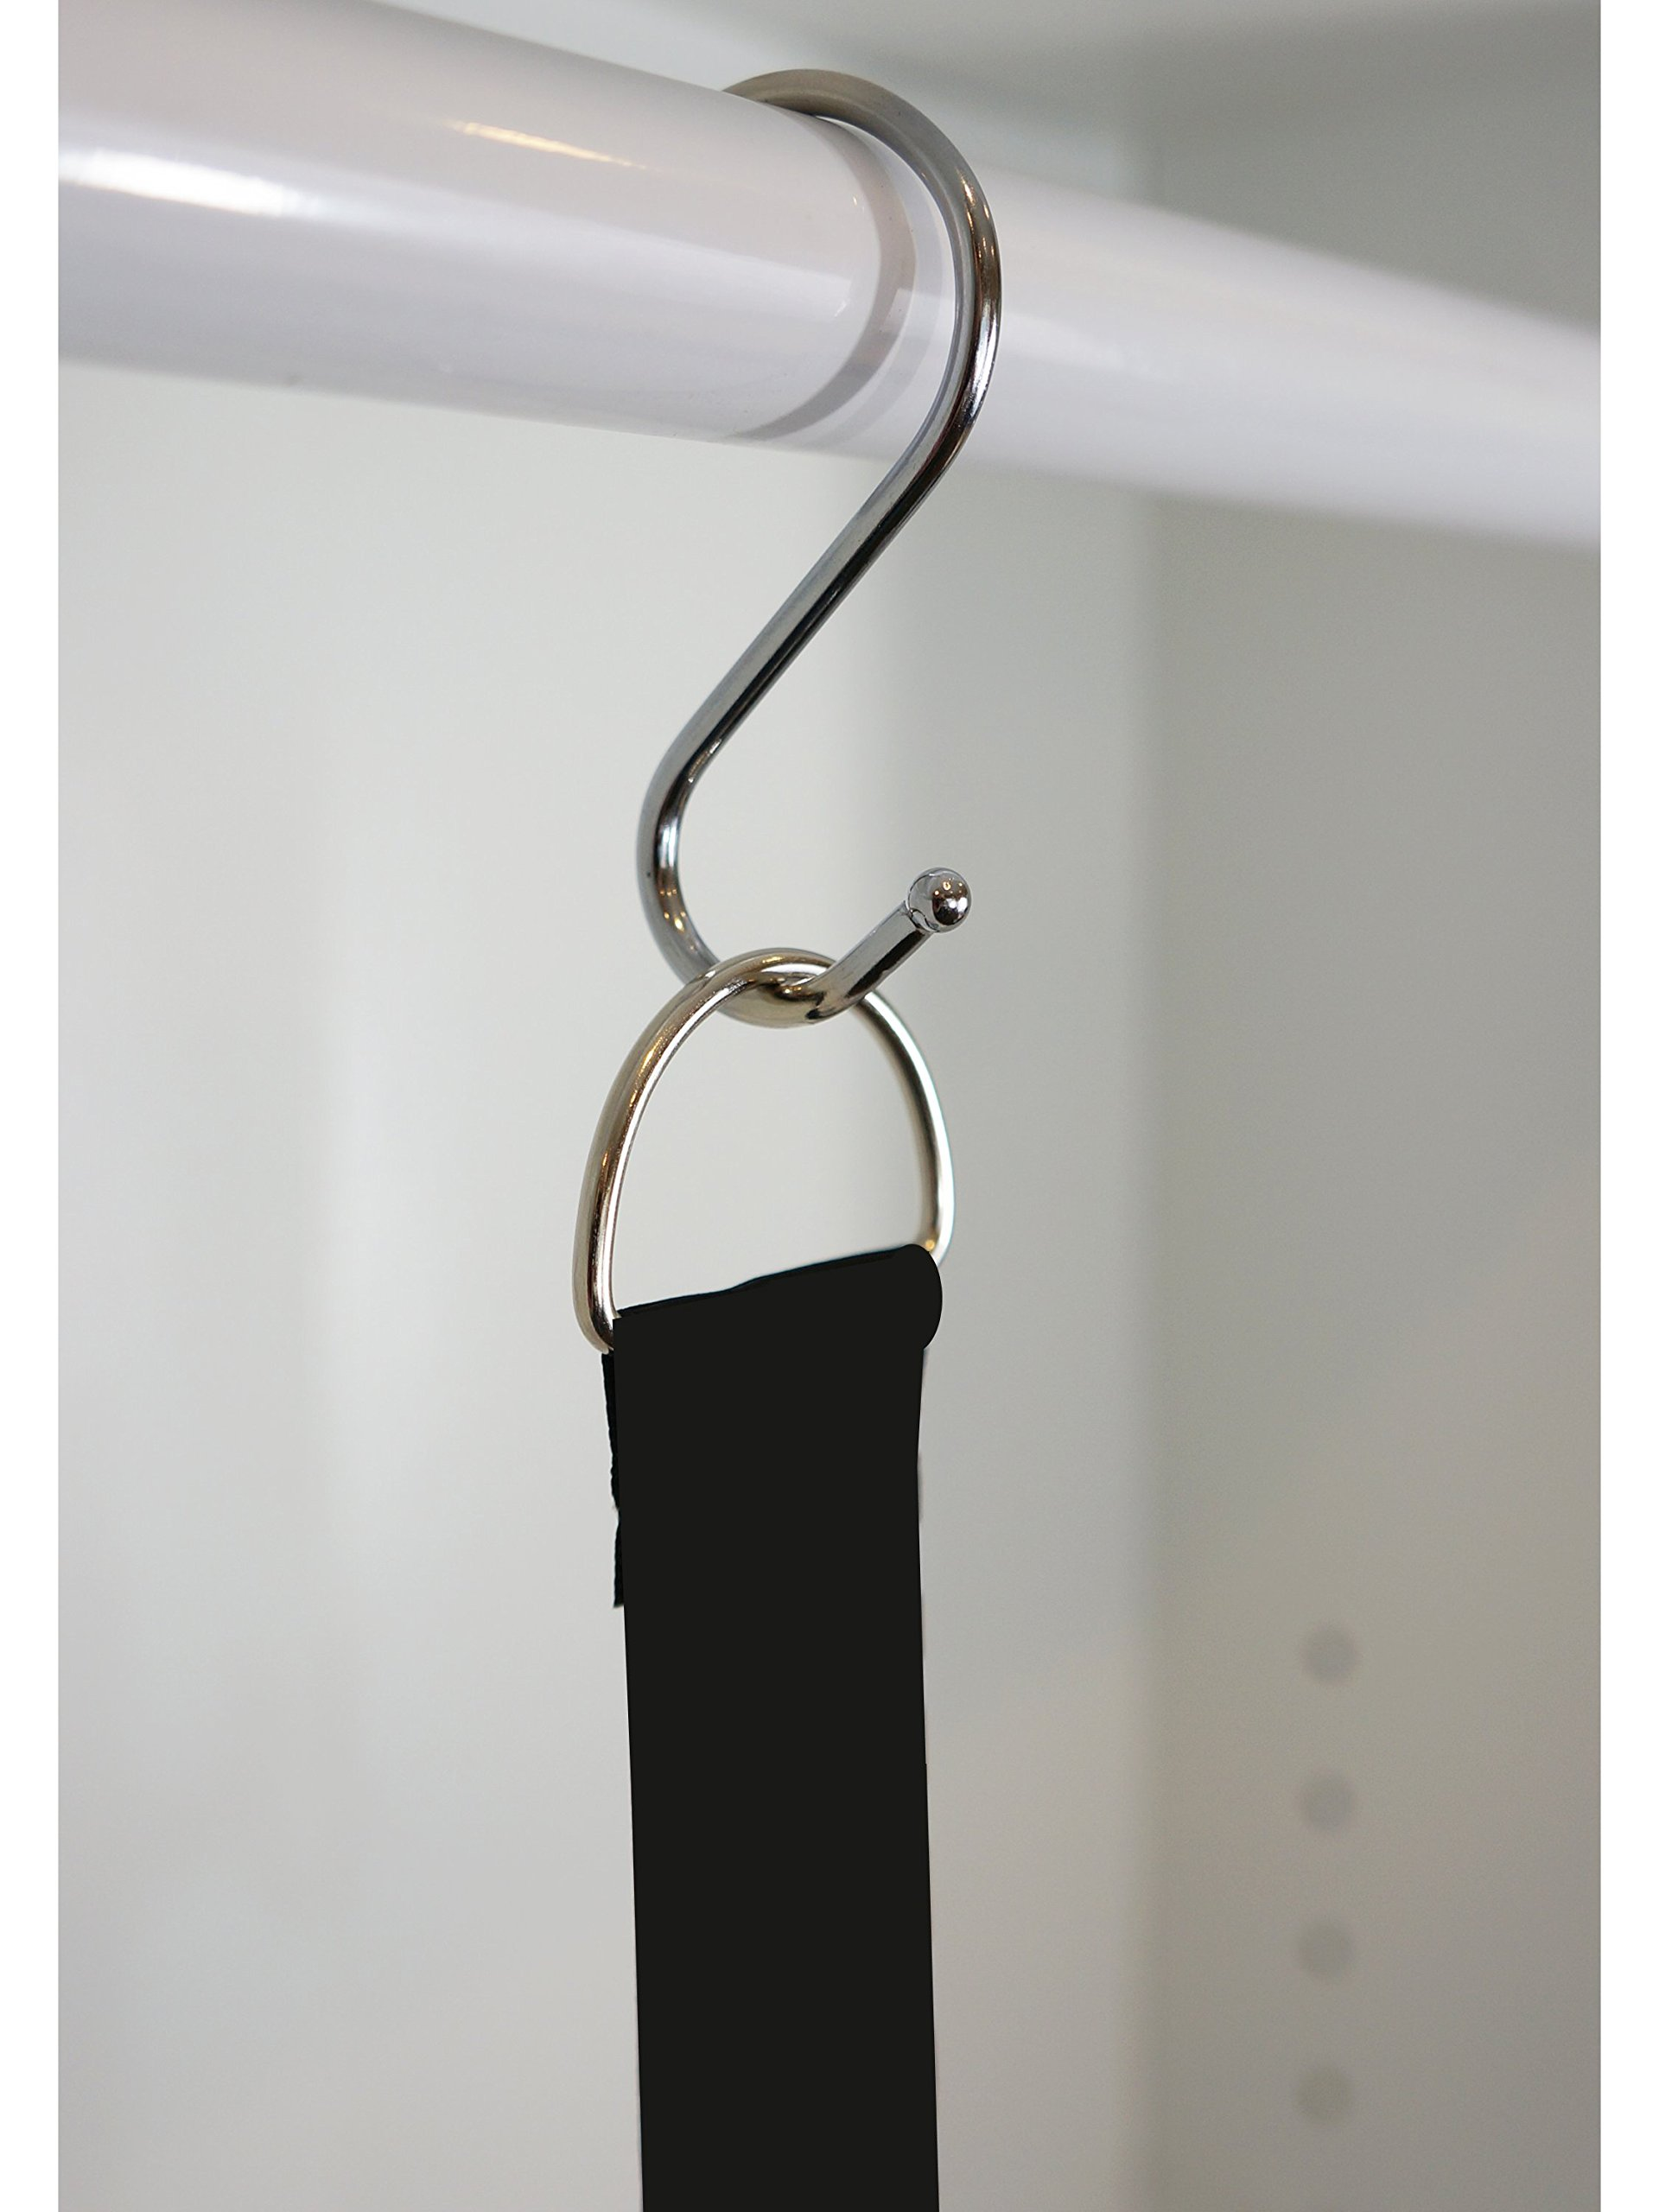 ADD-ON- SILVER HOOK ONLY (This is JUST the S-Hook for the Flip Flop and Sandal Hanger Holder By Boottique - Flip Flop Storage and Organization (Silver Hook)